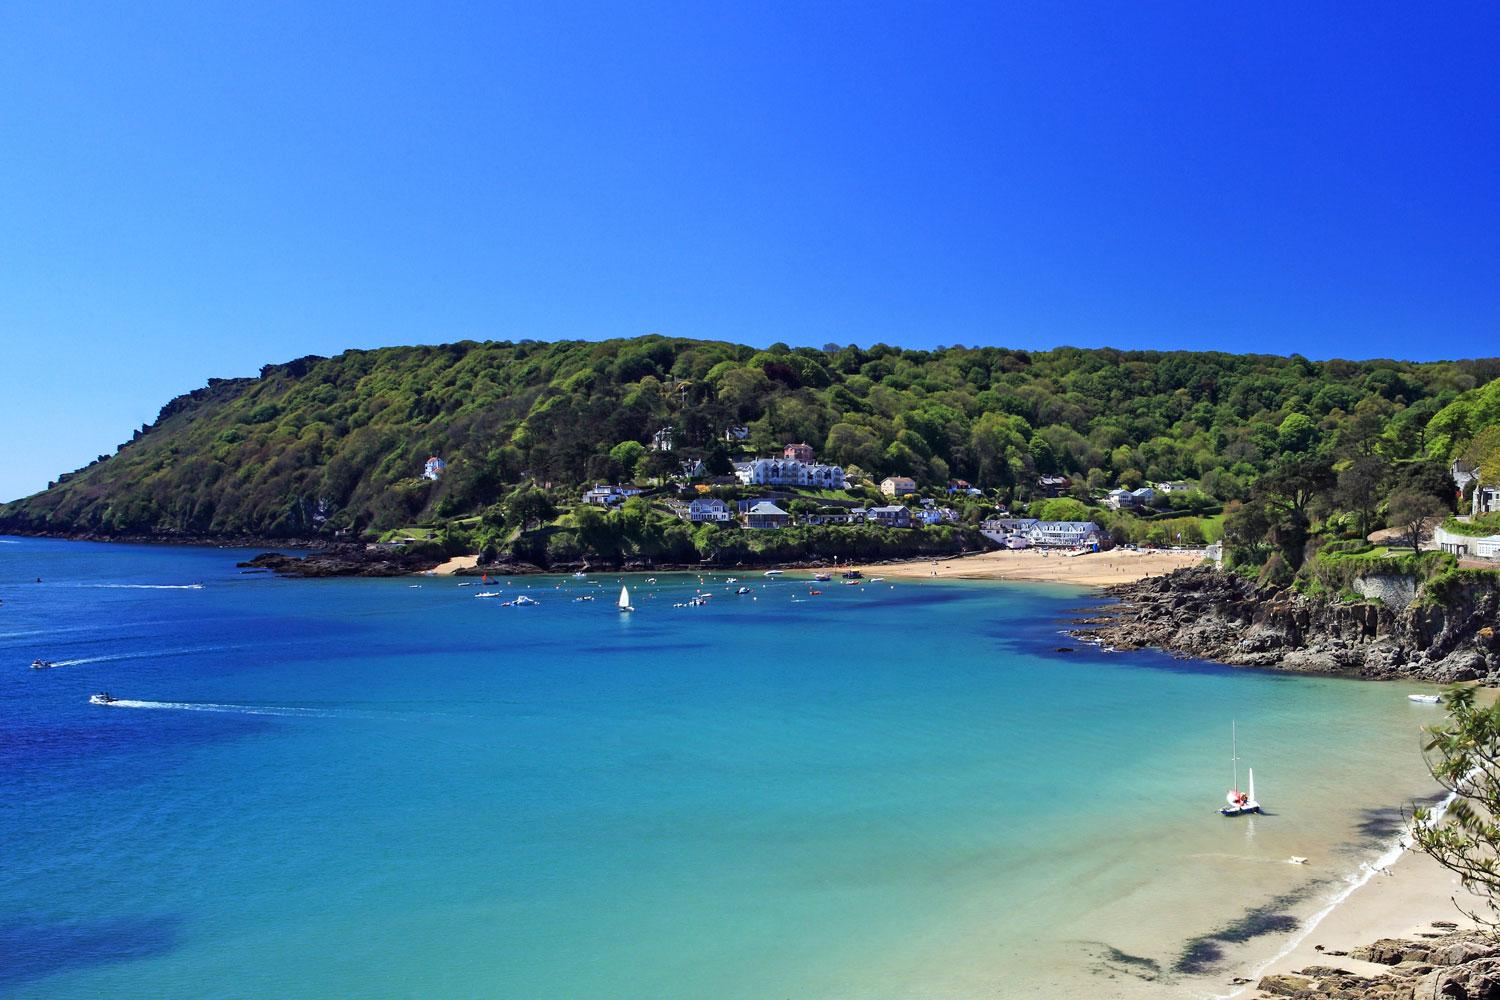 Salcombe bay, part of the